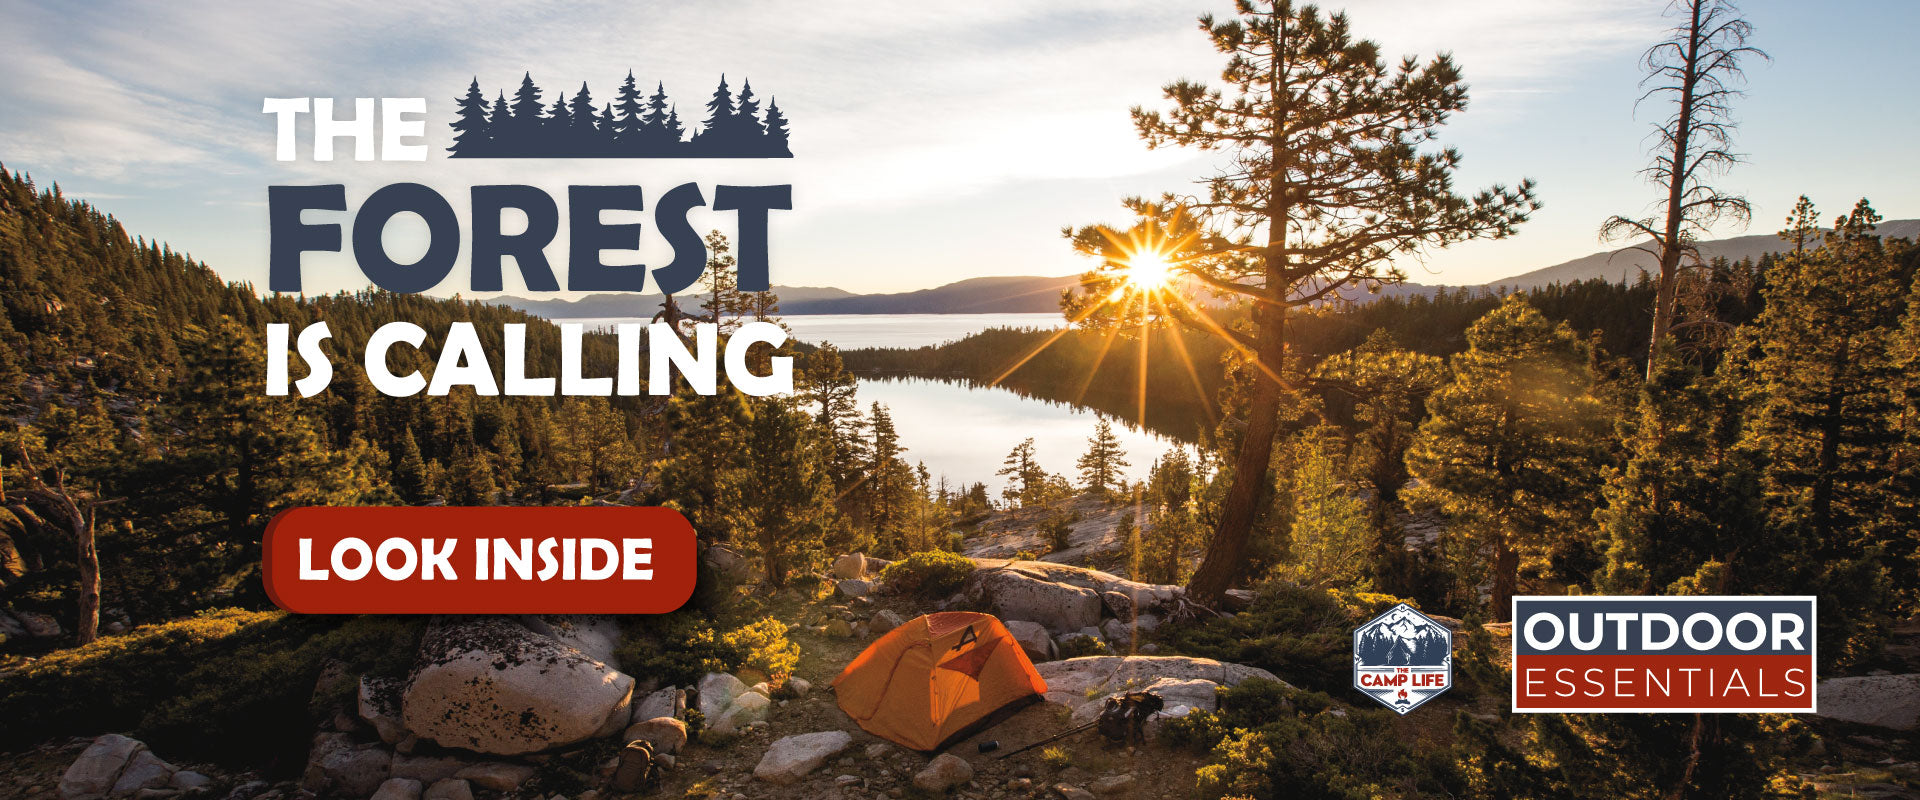 The Forest is Calling - Outdoor Essentials